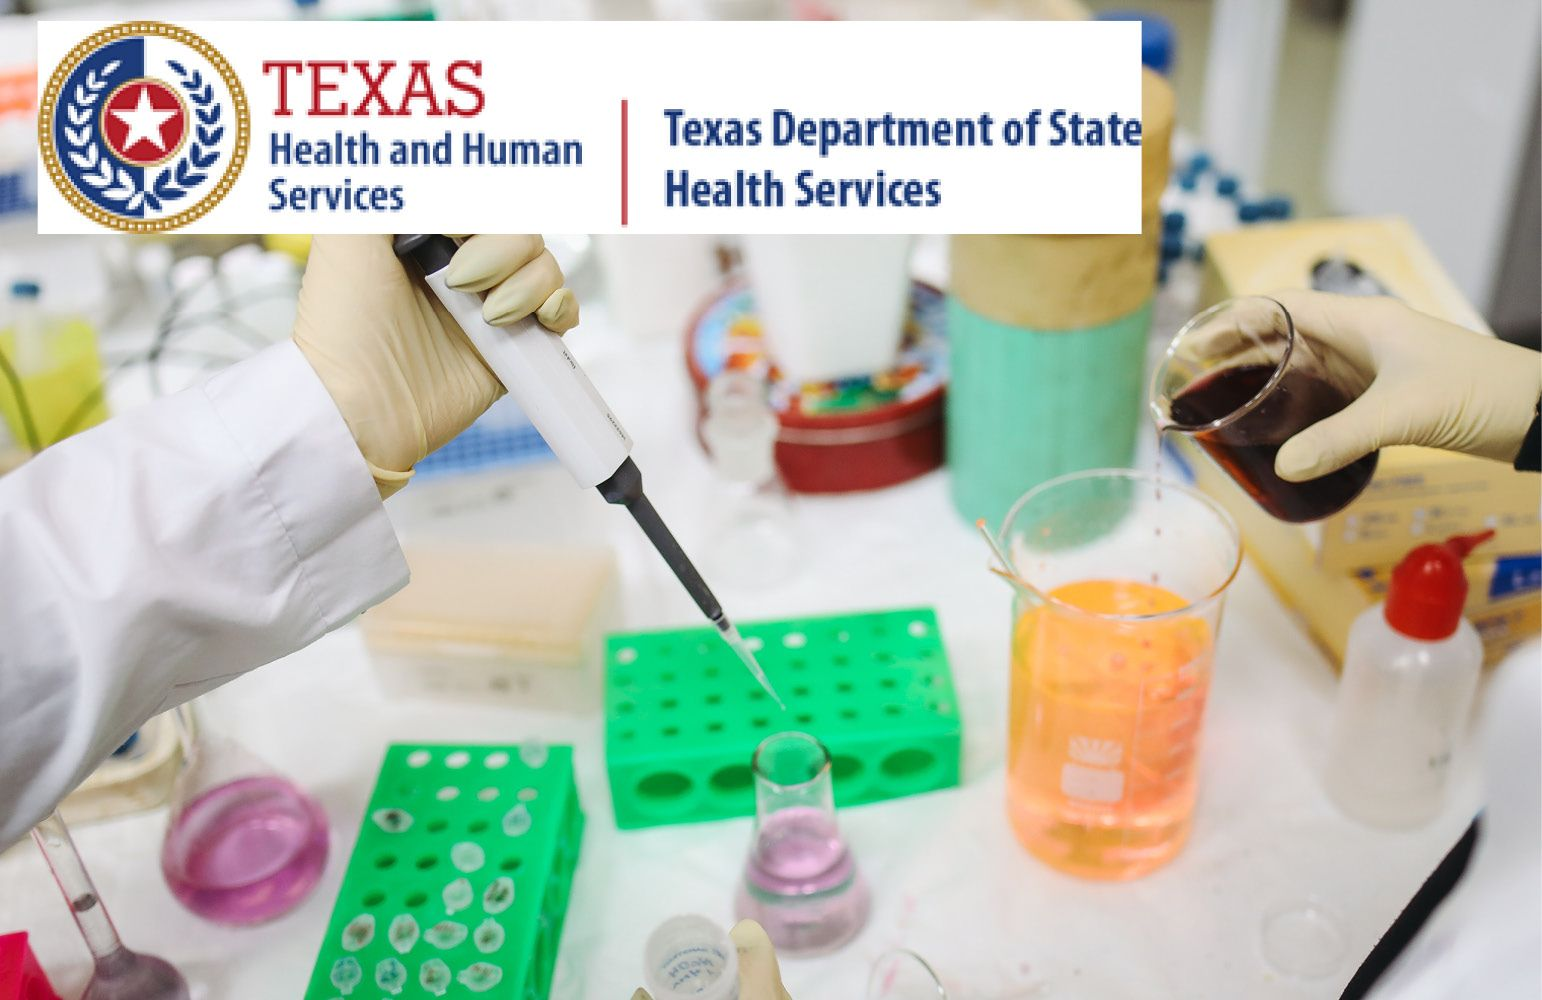 Texas State of State Health Services